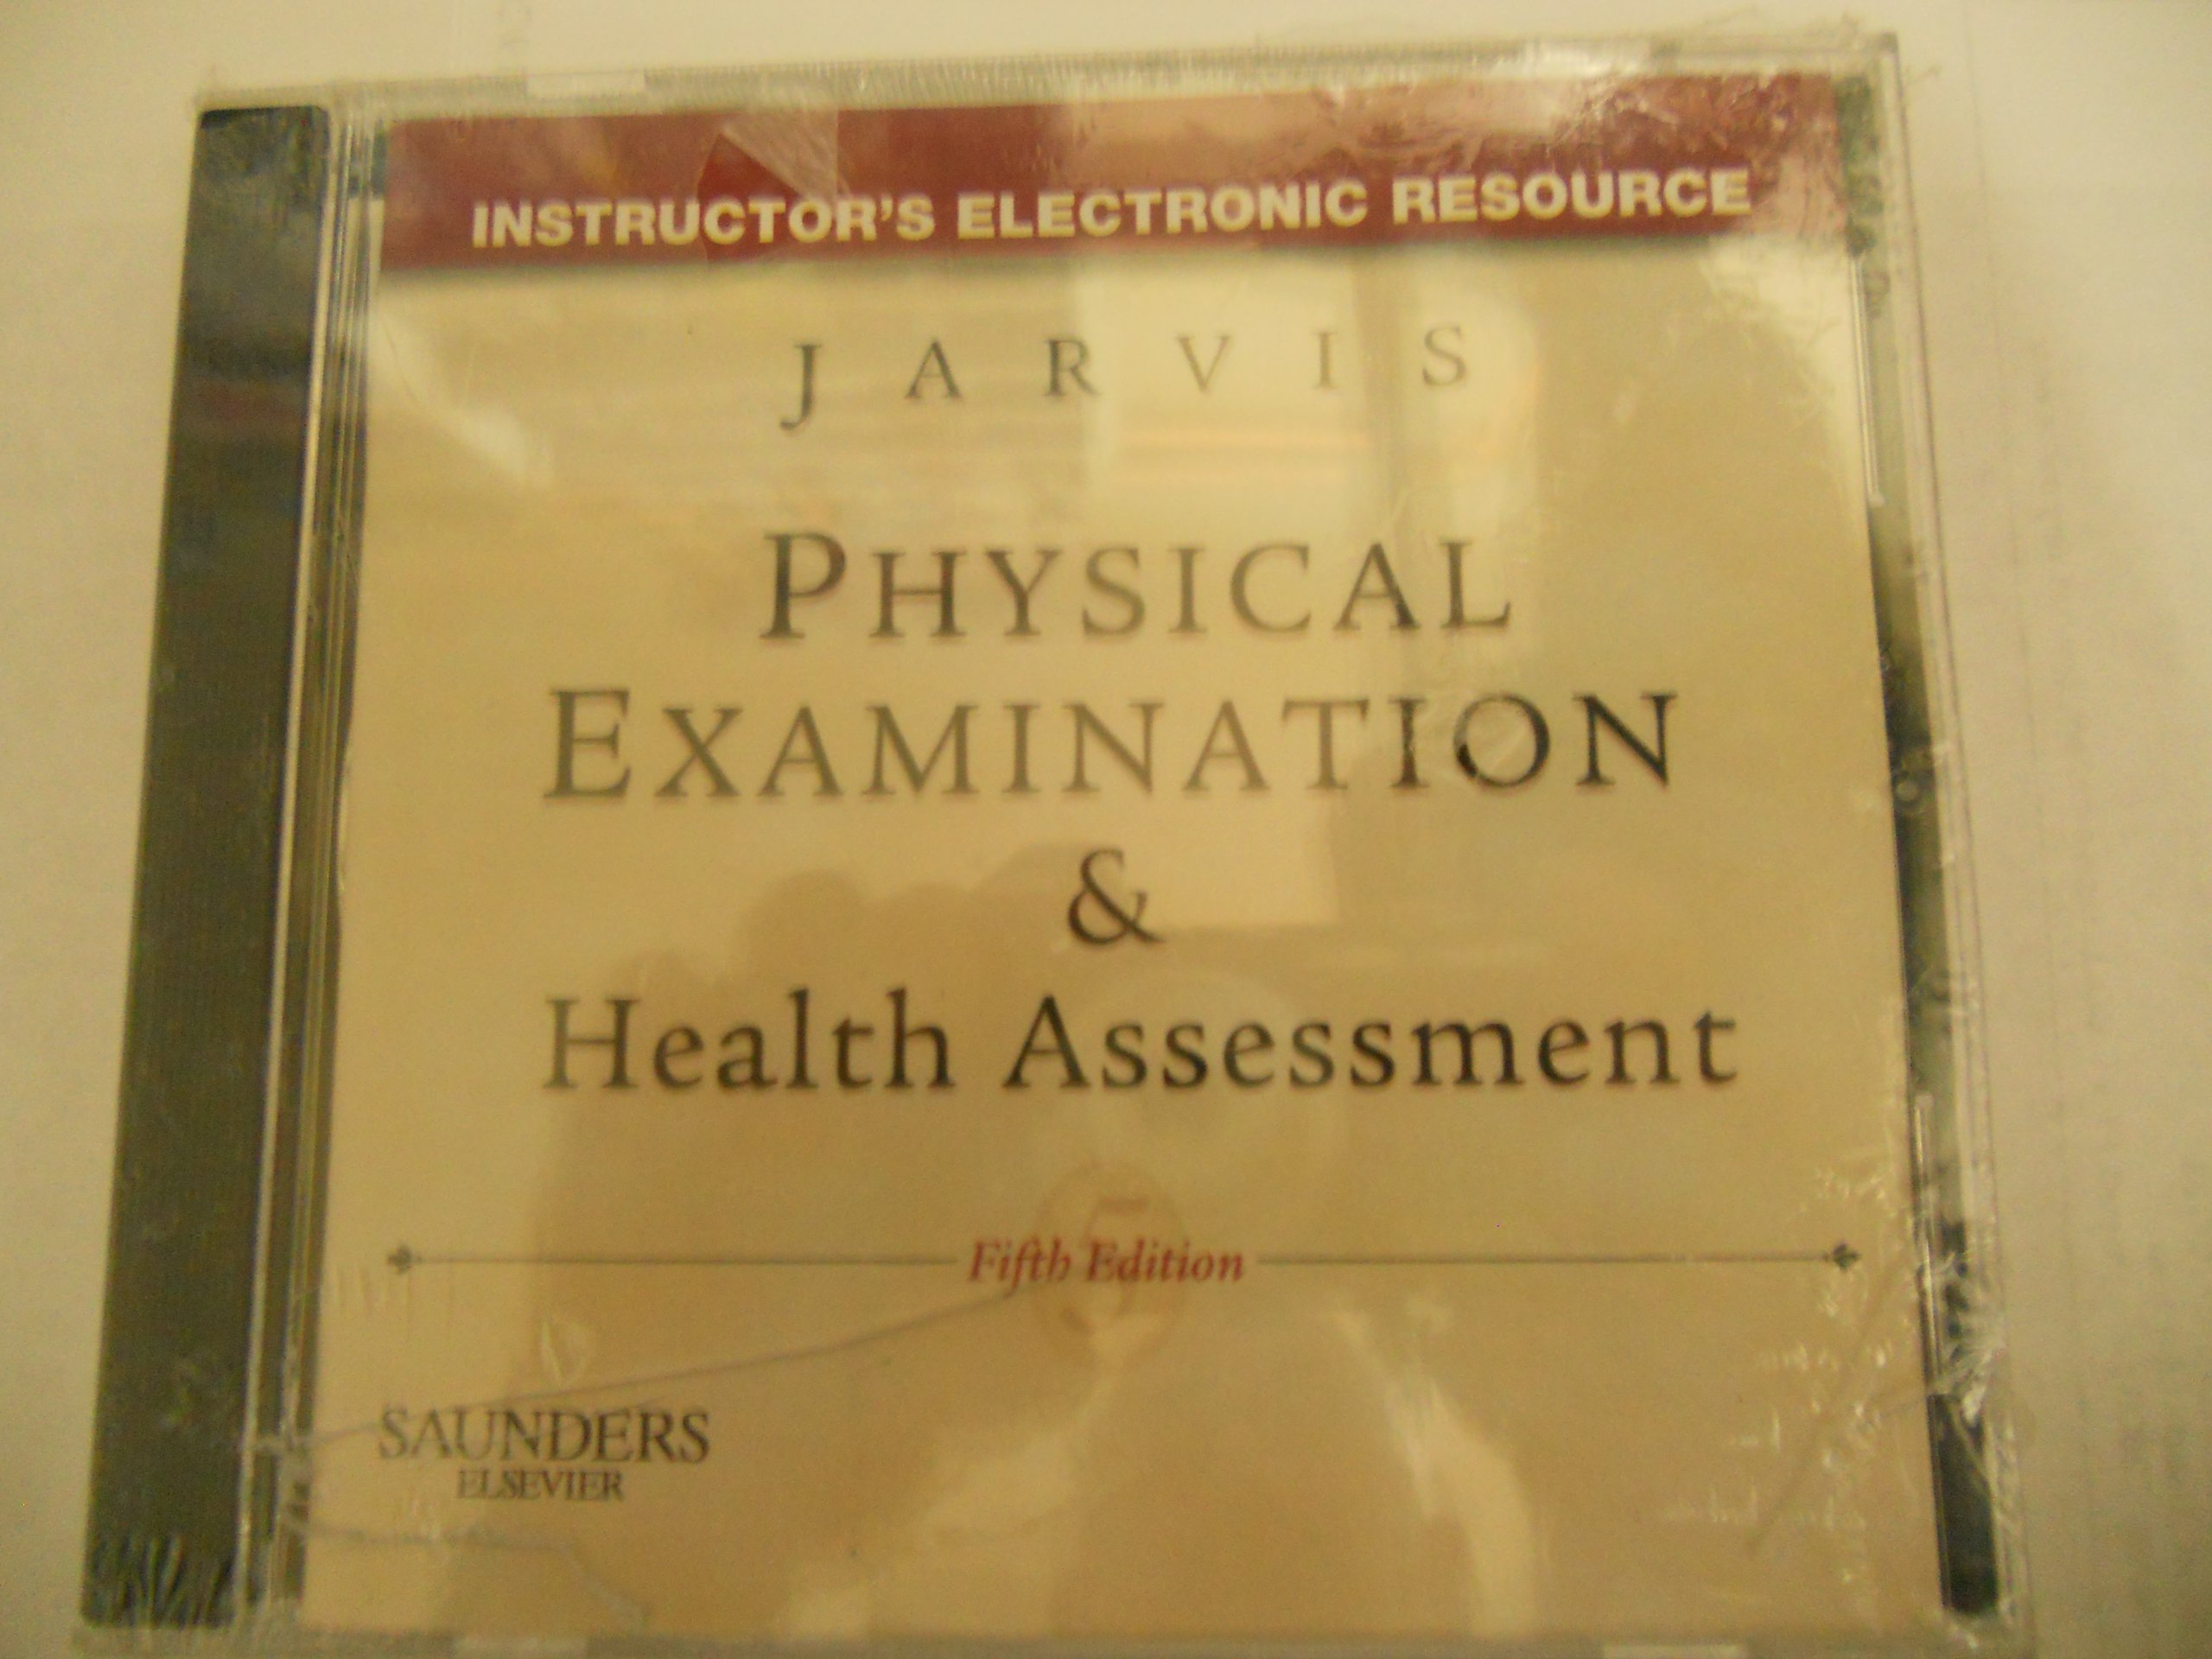 Physical Examination and Health Assessment (Instructor's Electronic  Resource): Jarvis: 9781416047285: Amazon.com: Books